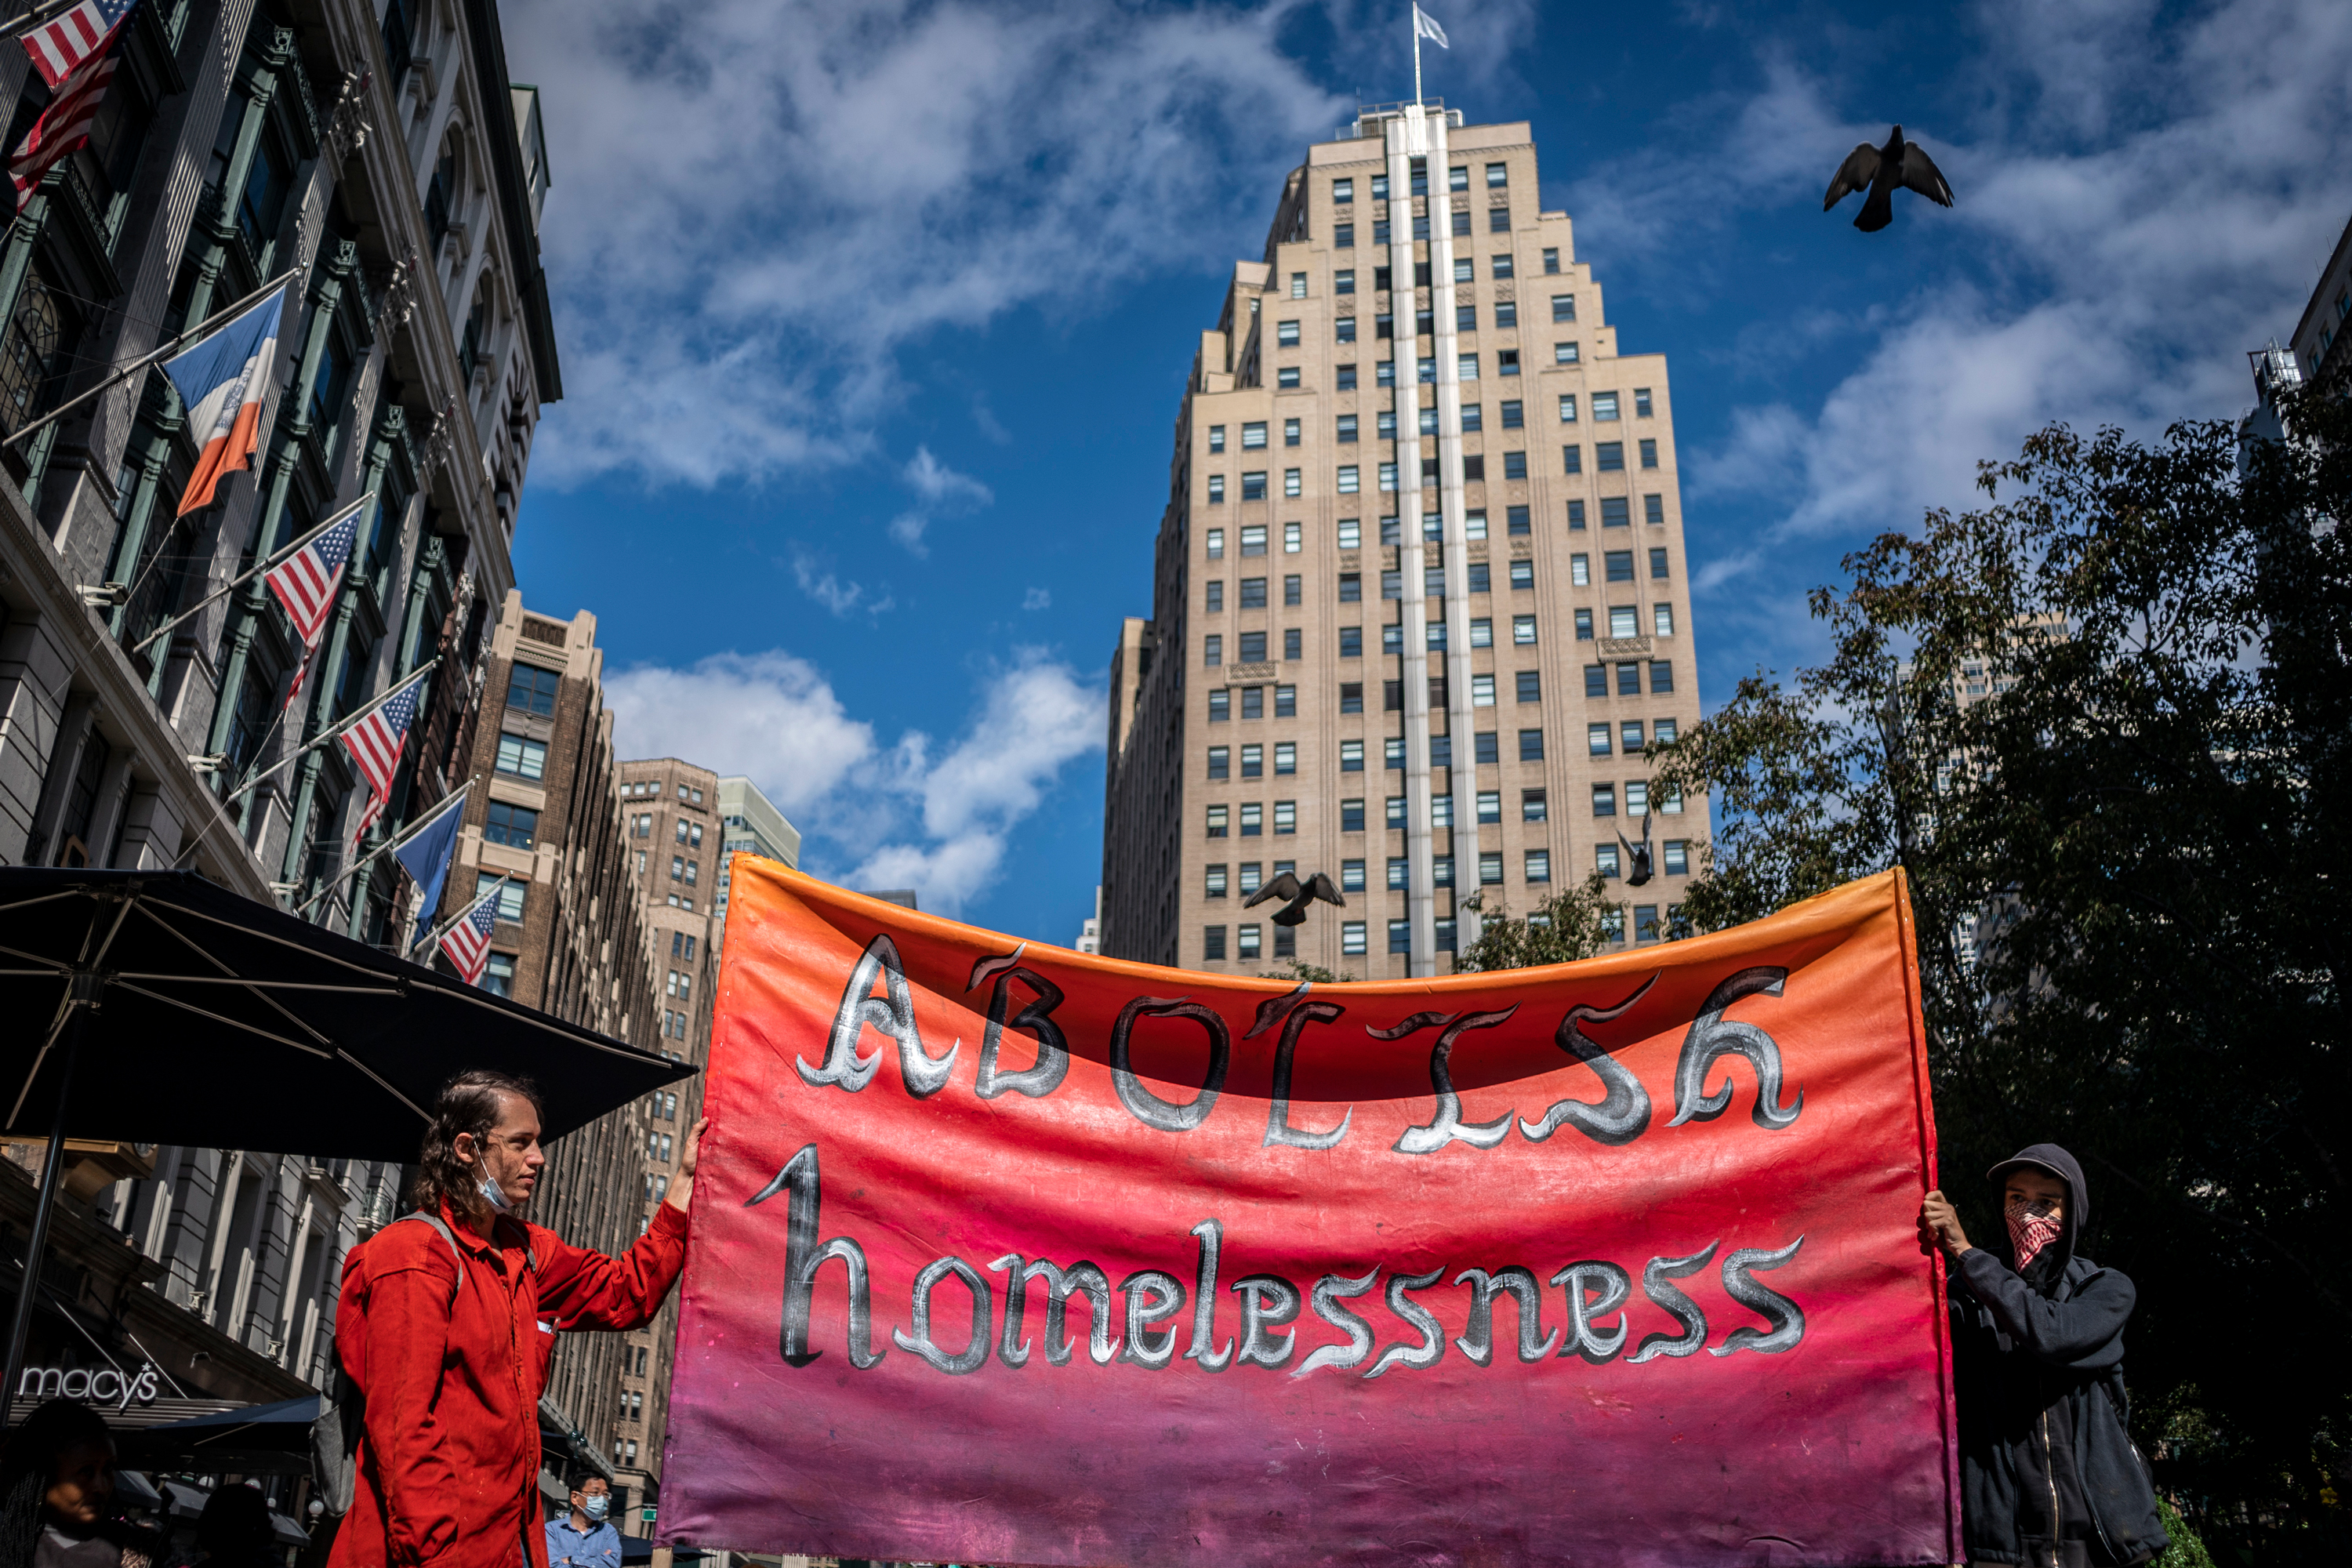 Advocates draw attention in Herald Square to increased struggles for homeless people during the coronavirus outbreak, Oct. 2, 2020.